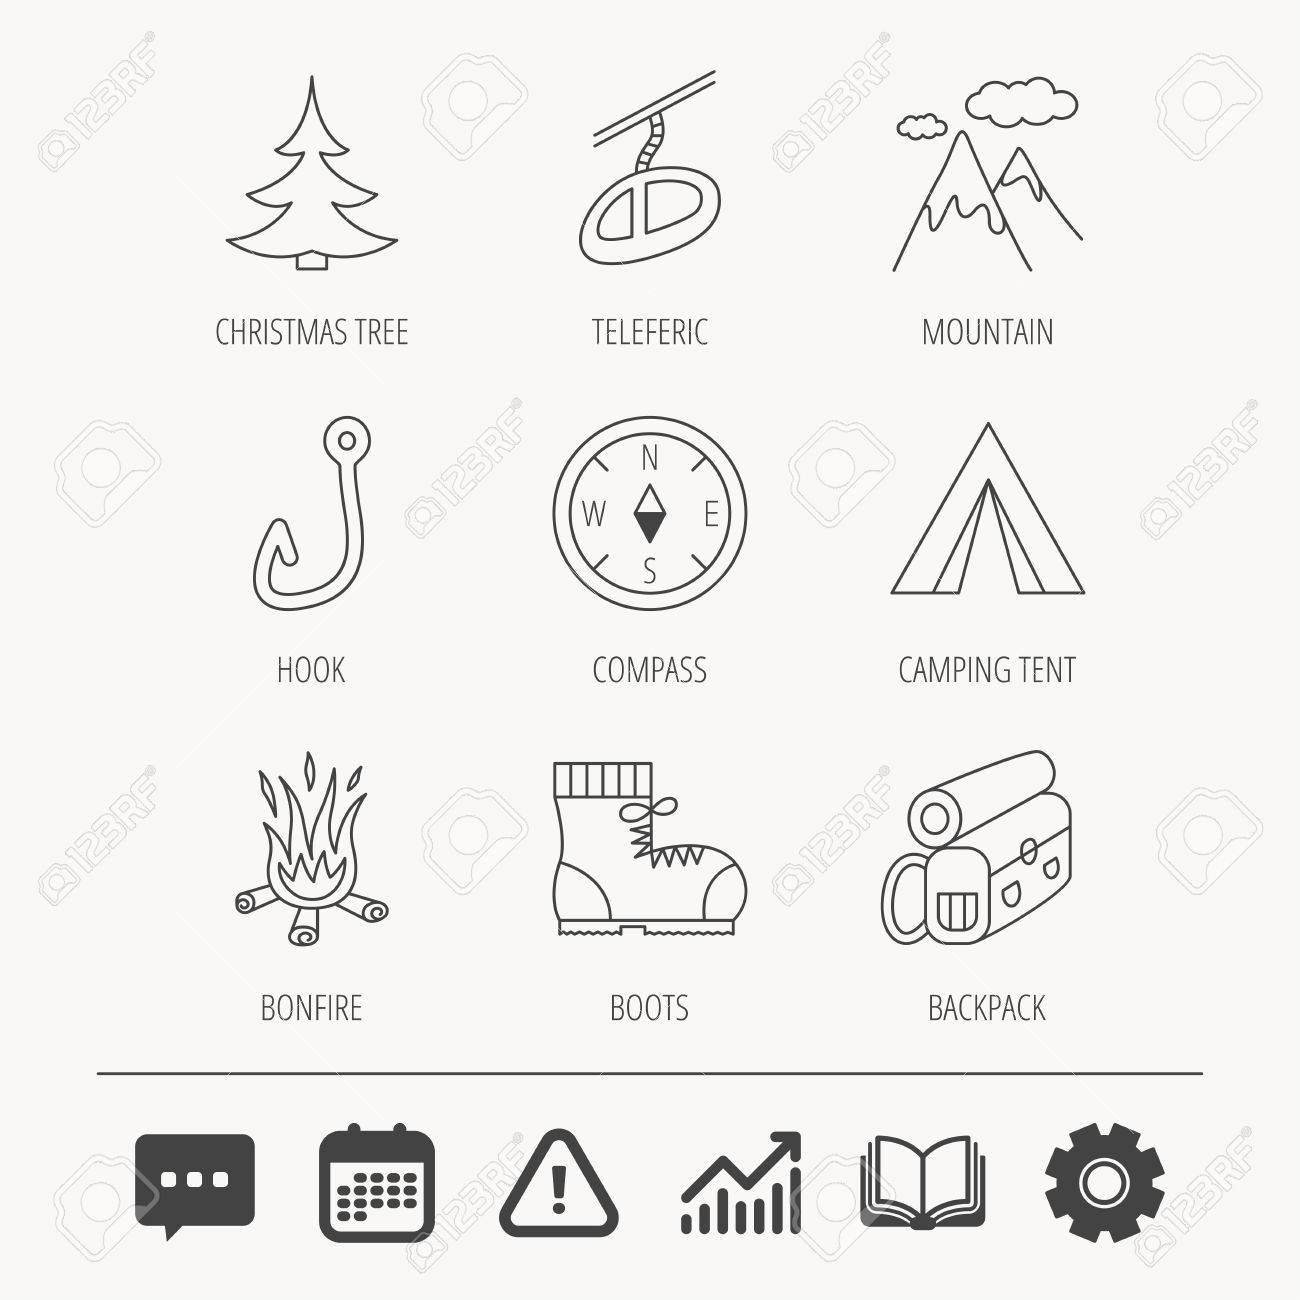 Backpack On Hook Clipart